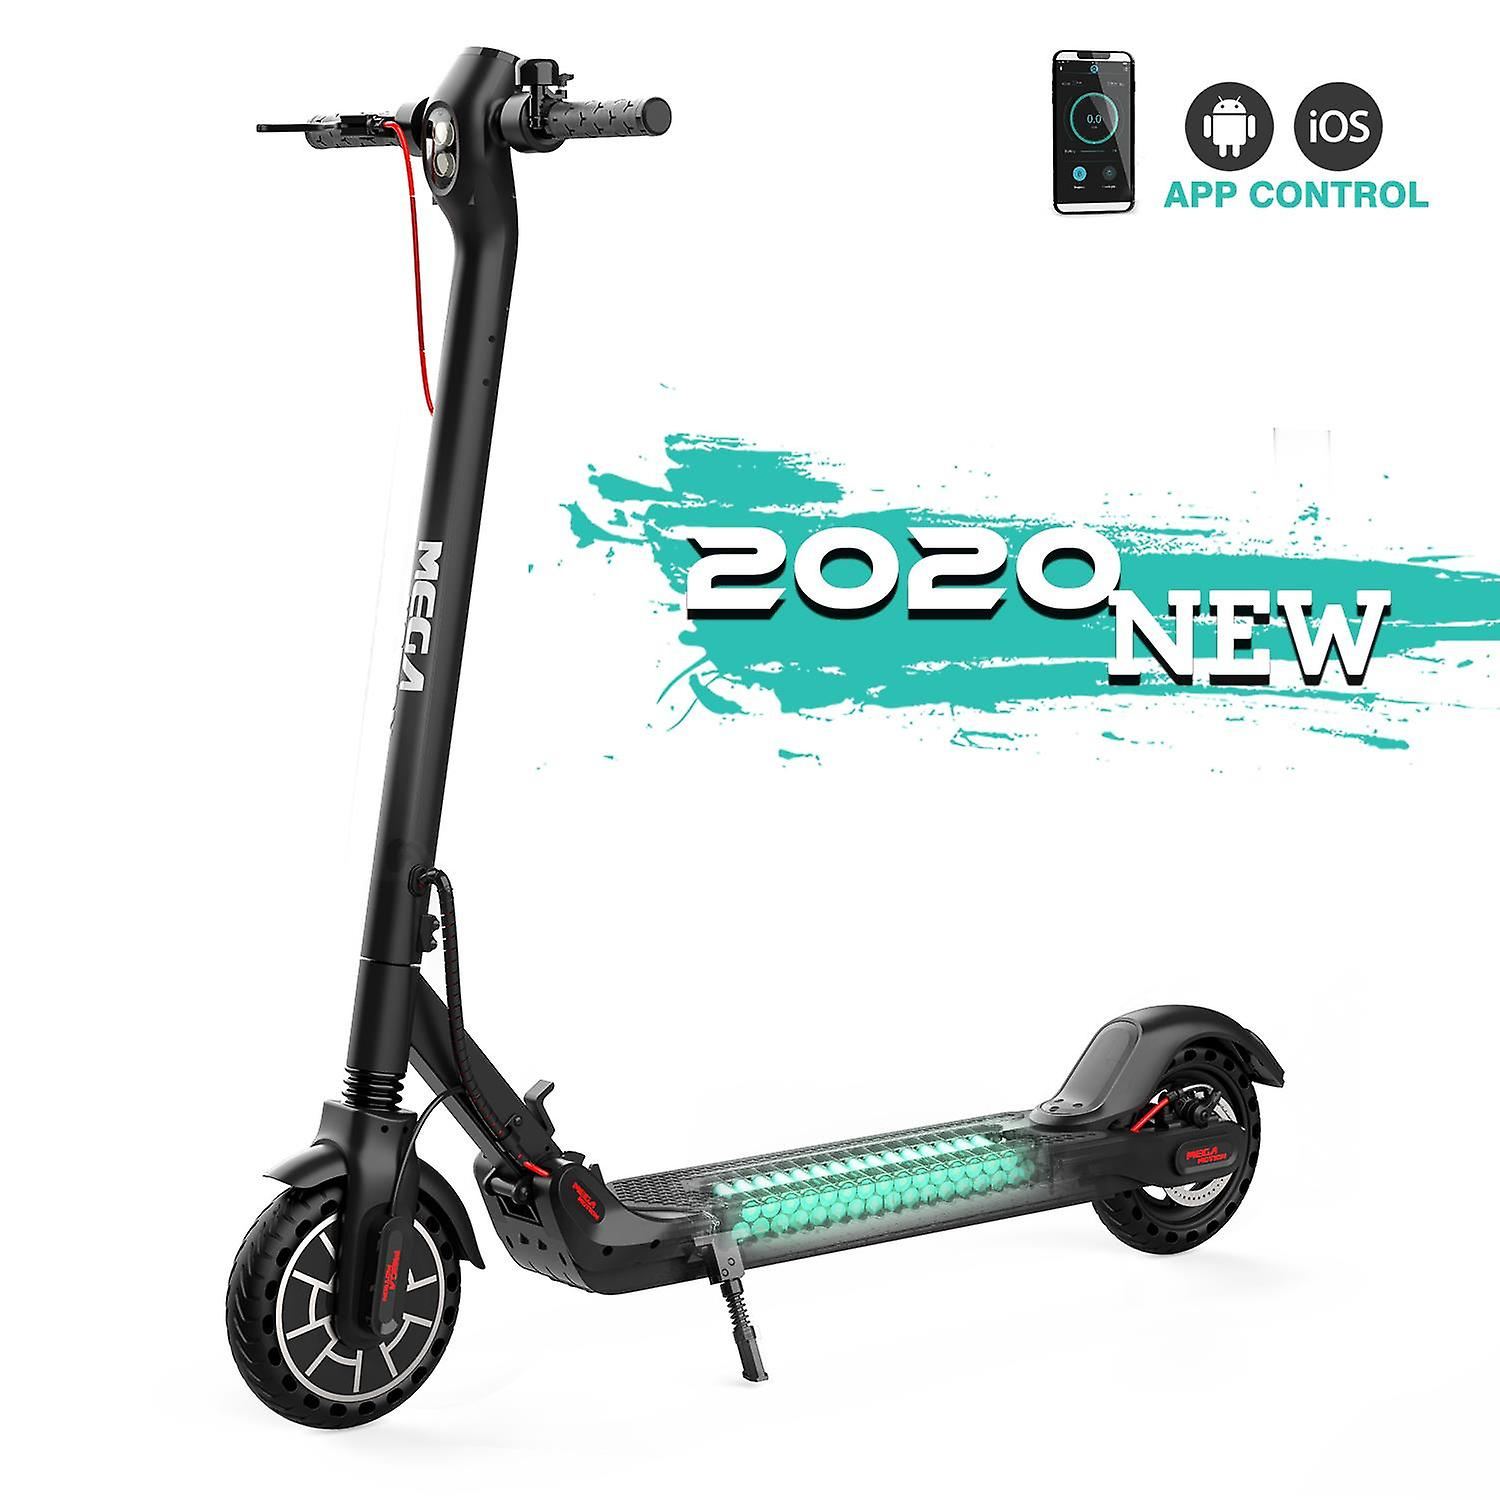 MegaMotion Electric Scooter M5 350W LED Display Screen App Foldable Black